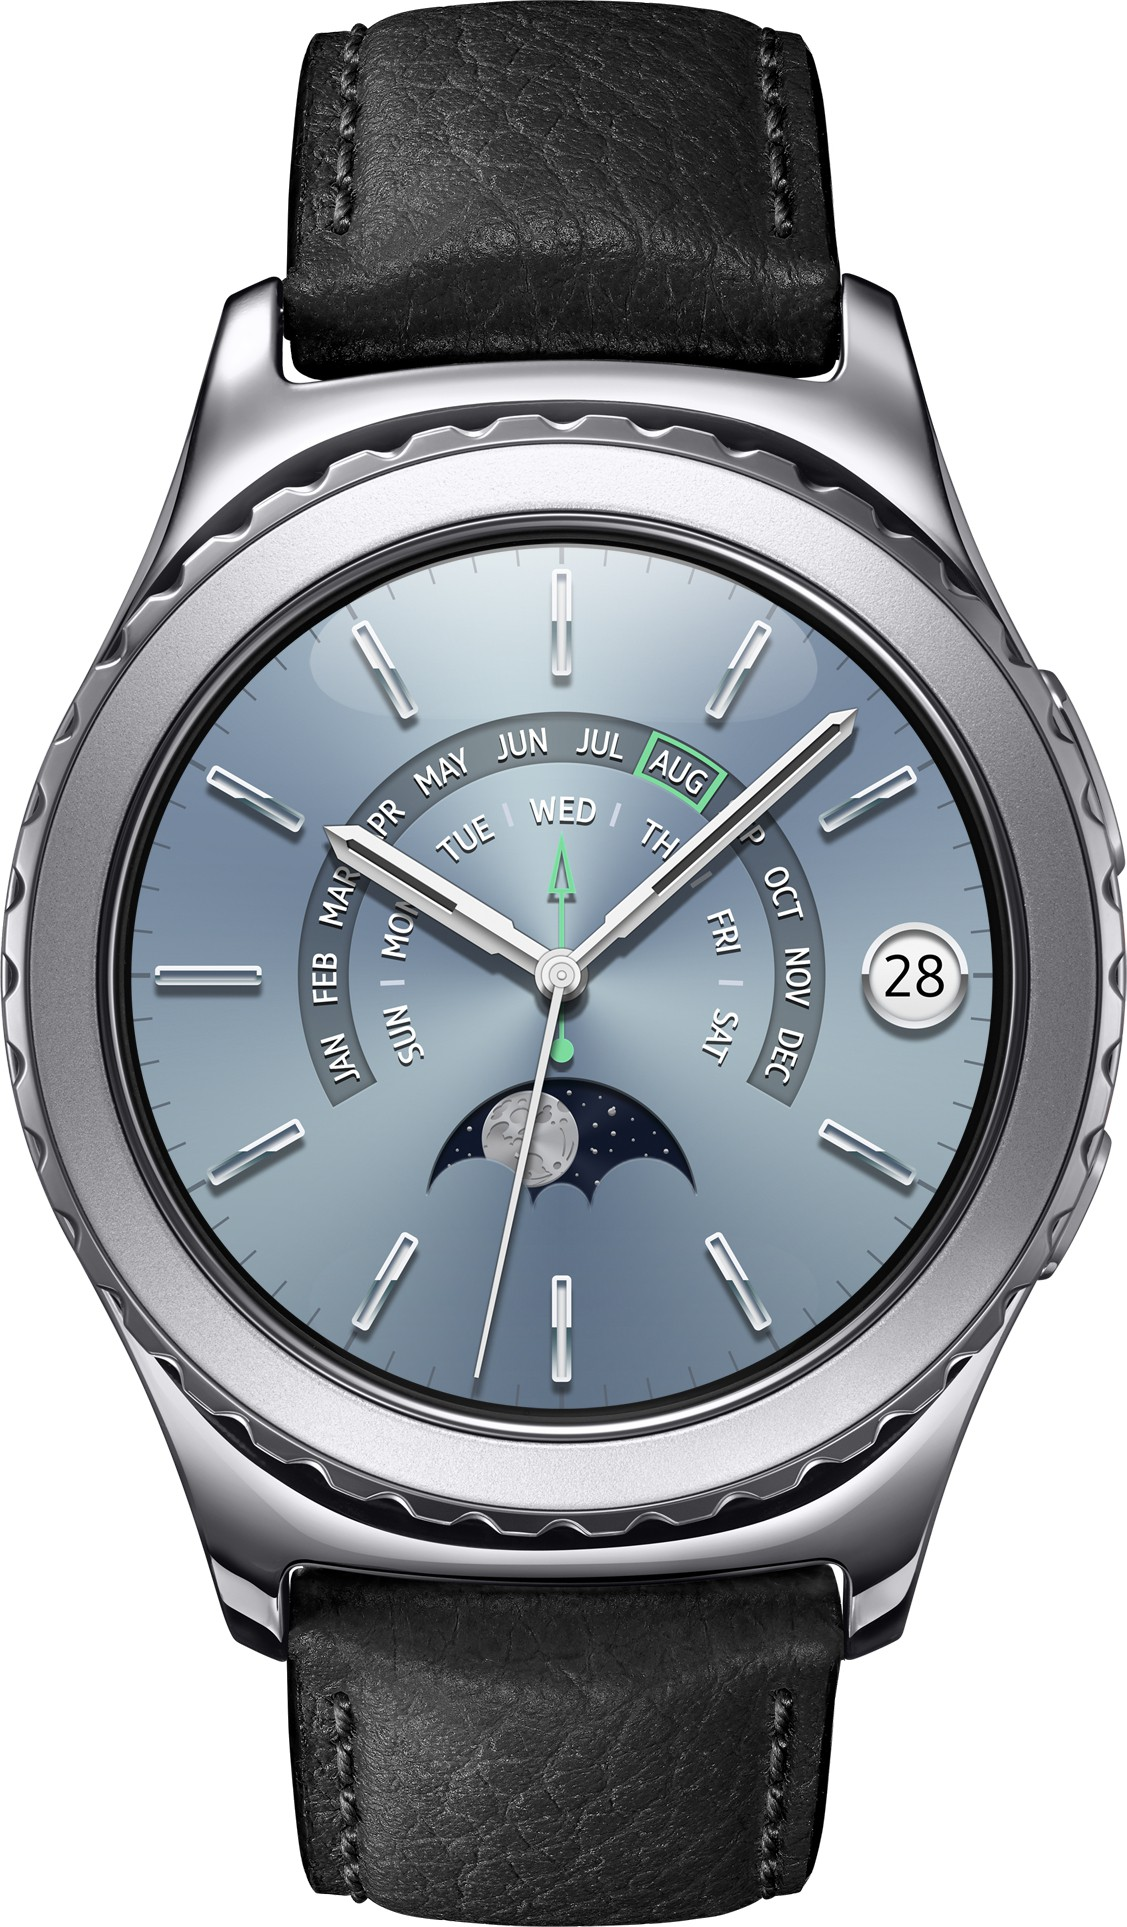 Deals - Chennai - Samsung <br> Gear S2 Smartwatches<br> Category - wearable_smart_devices<br> Business - Flipkart.com